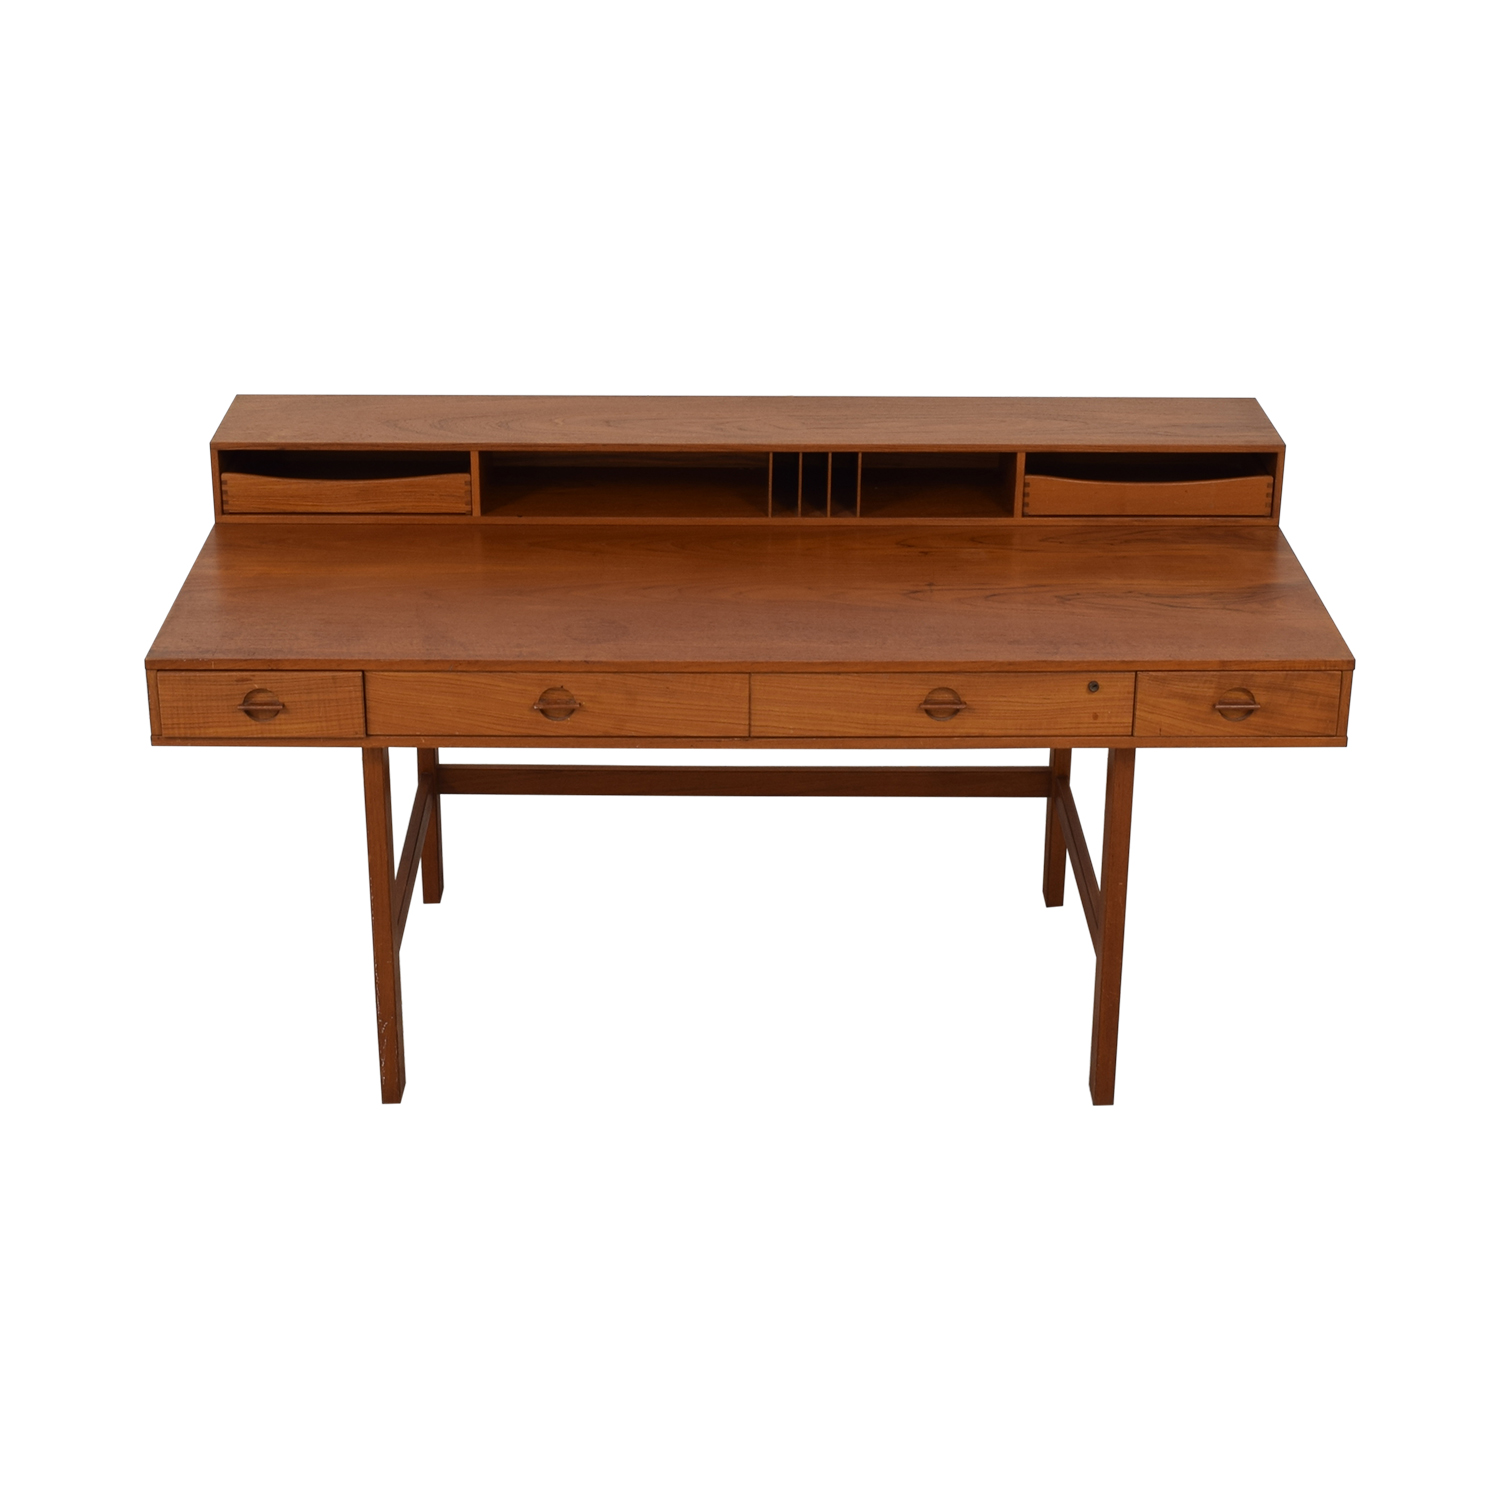 Løvig Peter Lovig Nielsen By Jens Quistgaard Flip-Top Desk in Teak second hand